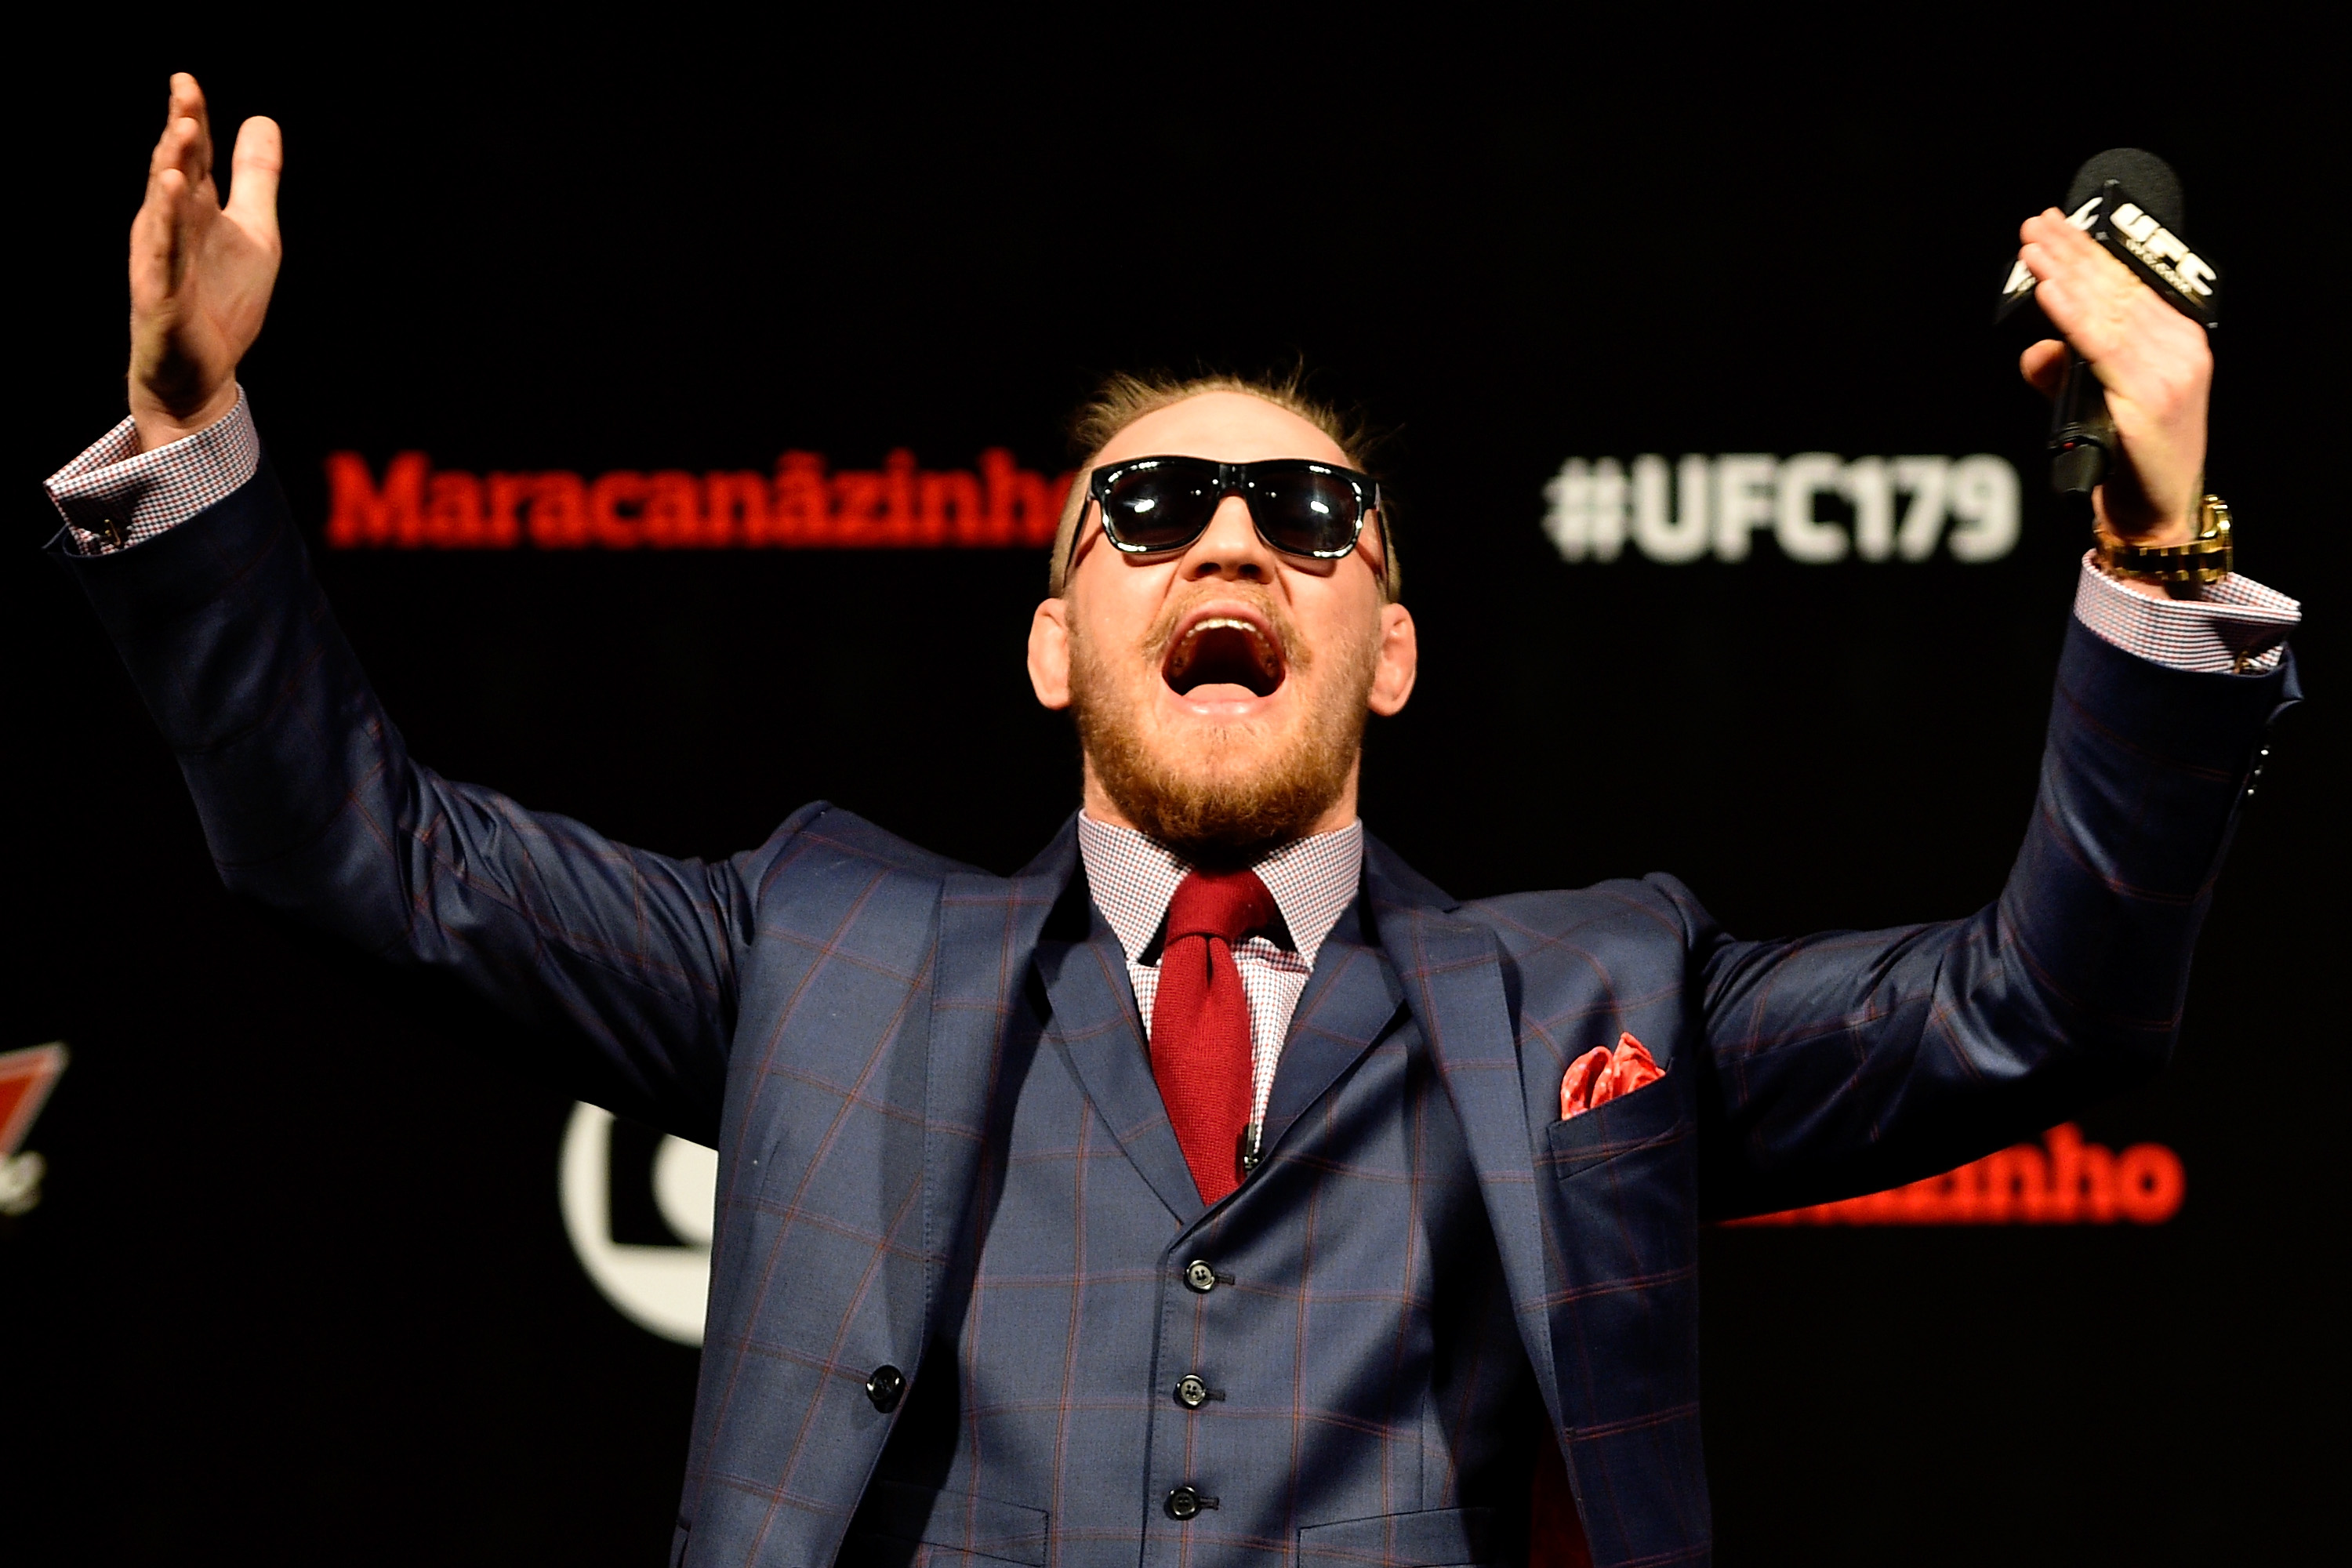 RIO DE JANEIRO, BRAZIL - OCTOBER 24: Conor McGregor of Ireland interacts with fans during a Q&A session before the UFC 179 weigh-in at Maracanazinho on October 24, 2014 in Rio de Janeiro, Brazil. (Photo by Buda Mendes/Getty Images)